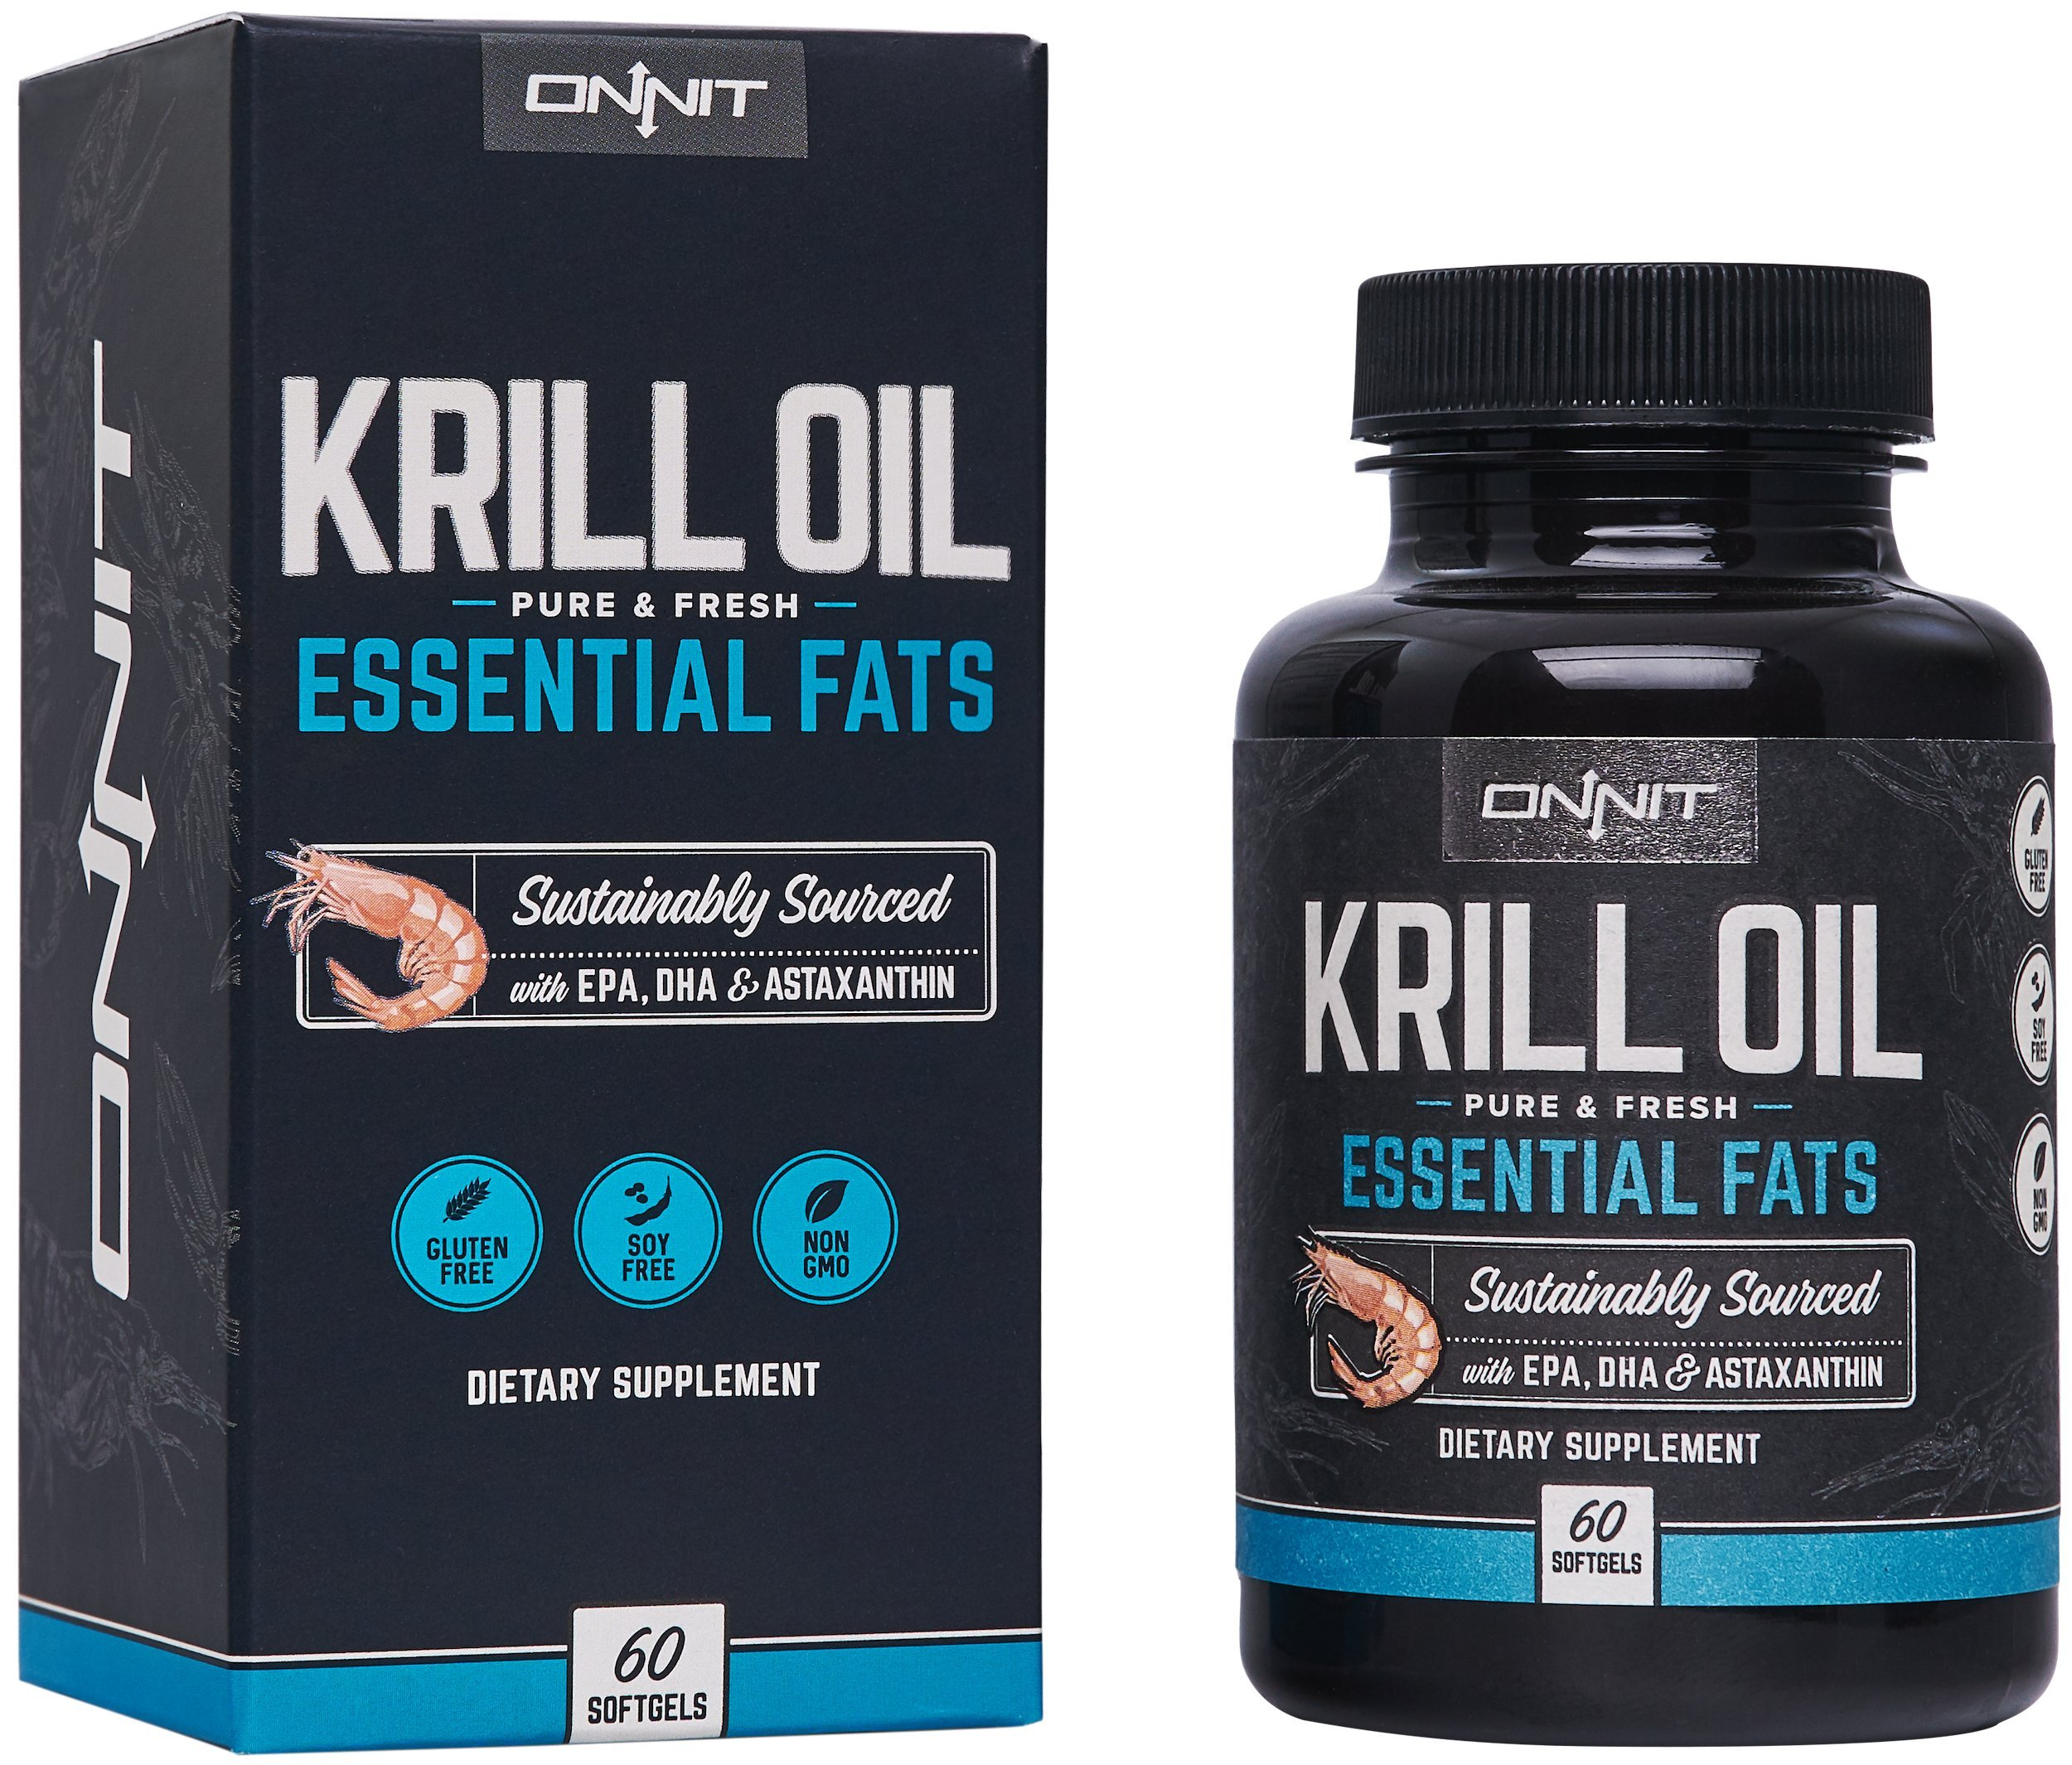 ONNIT Antarctic Krill Oil - 1000mg Per Serving - No Fishy Smell or Taste - Packed with Omega-3s, EPA, DHA, Astaxanthin & Phospholipids - Supports Healthy Joints, Brain, Heart, and Blood Pressure by ONNIT